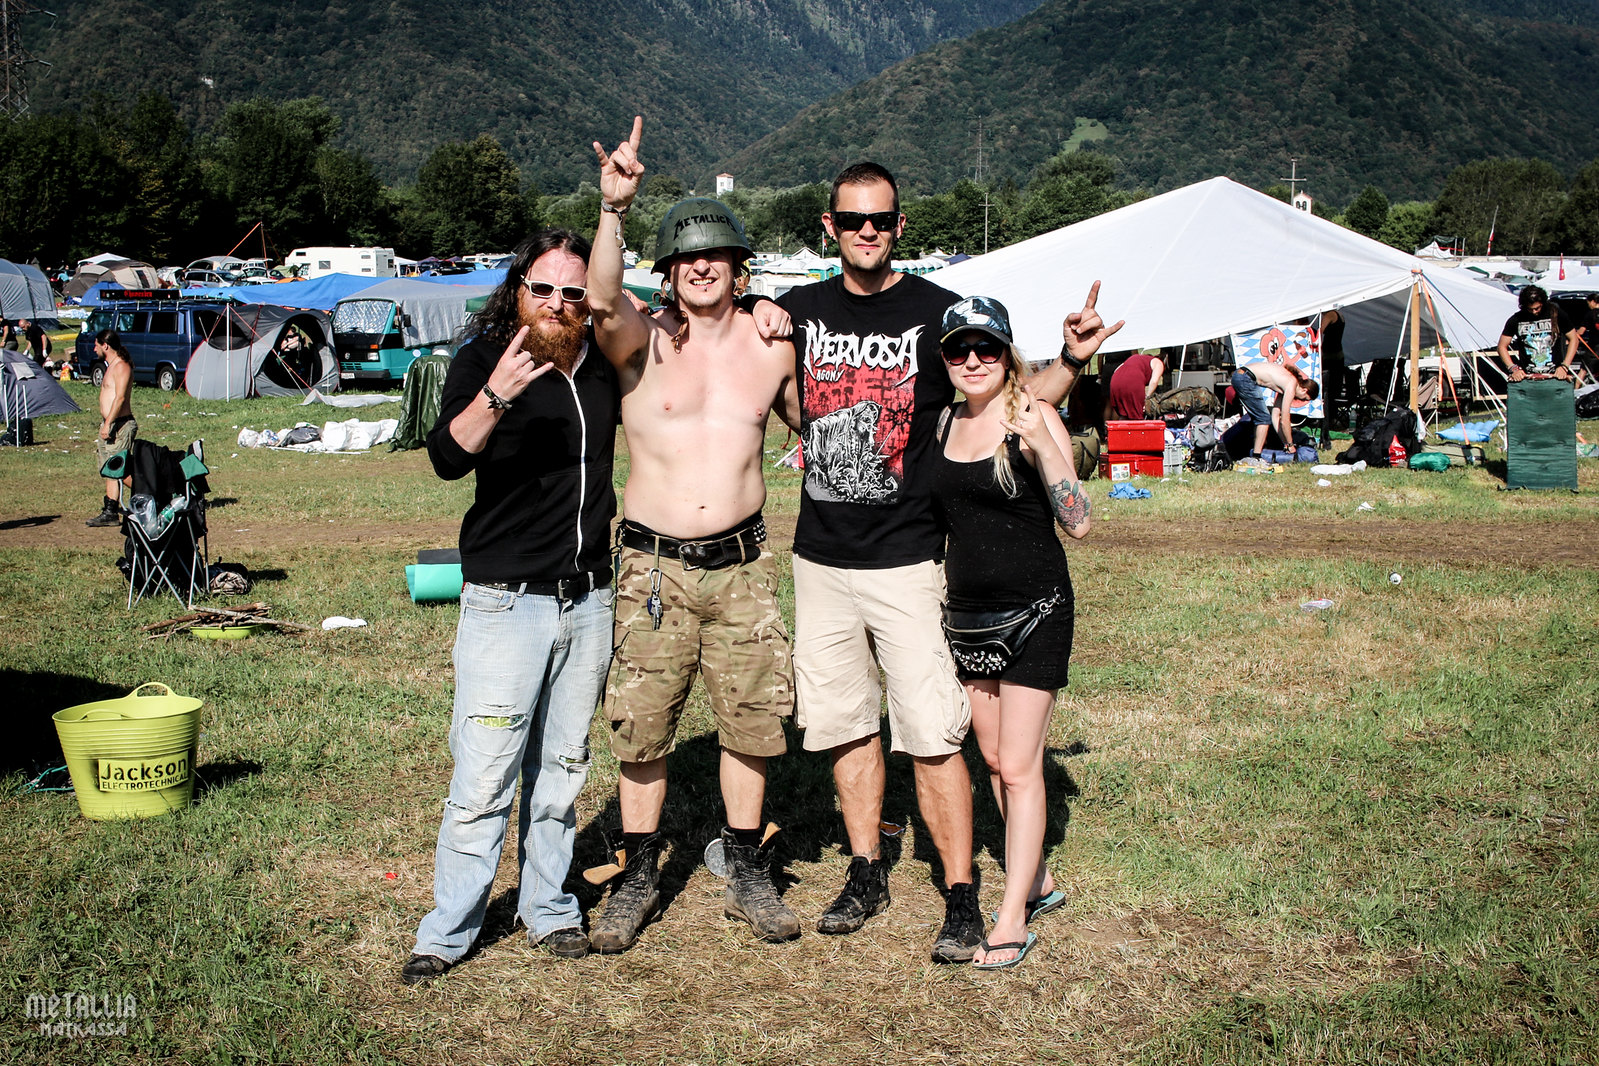 metaldays 2016, metaldays, metalcamp, metal festival, tolmin, metaldays camping, campsite